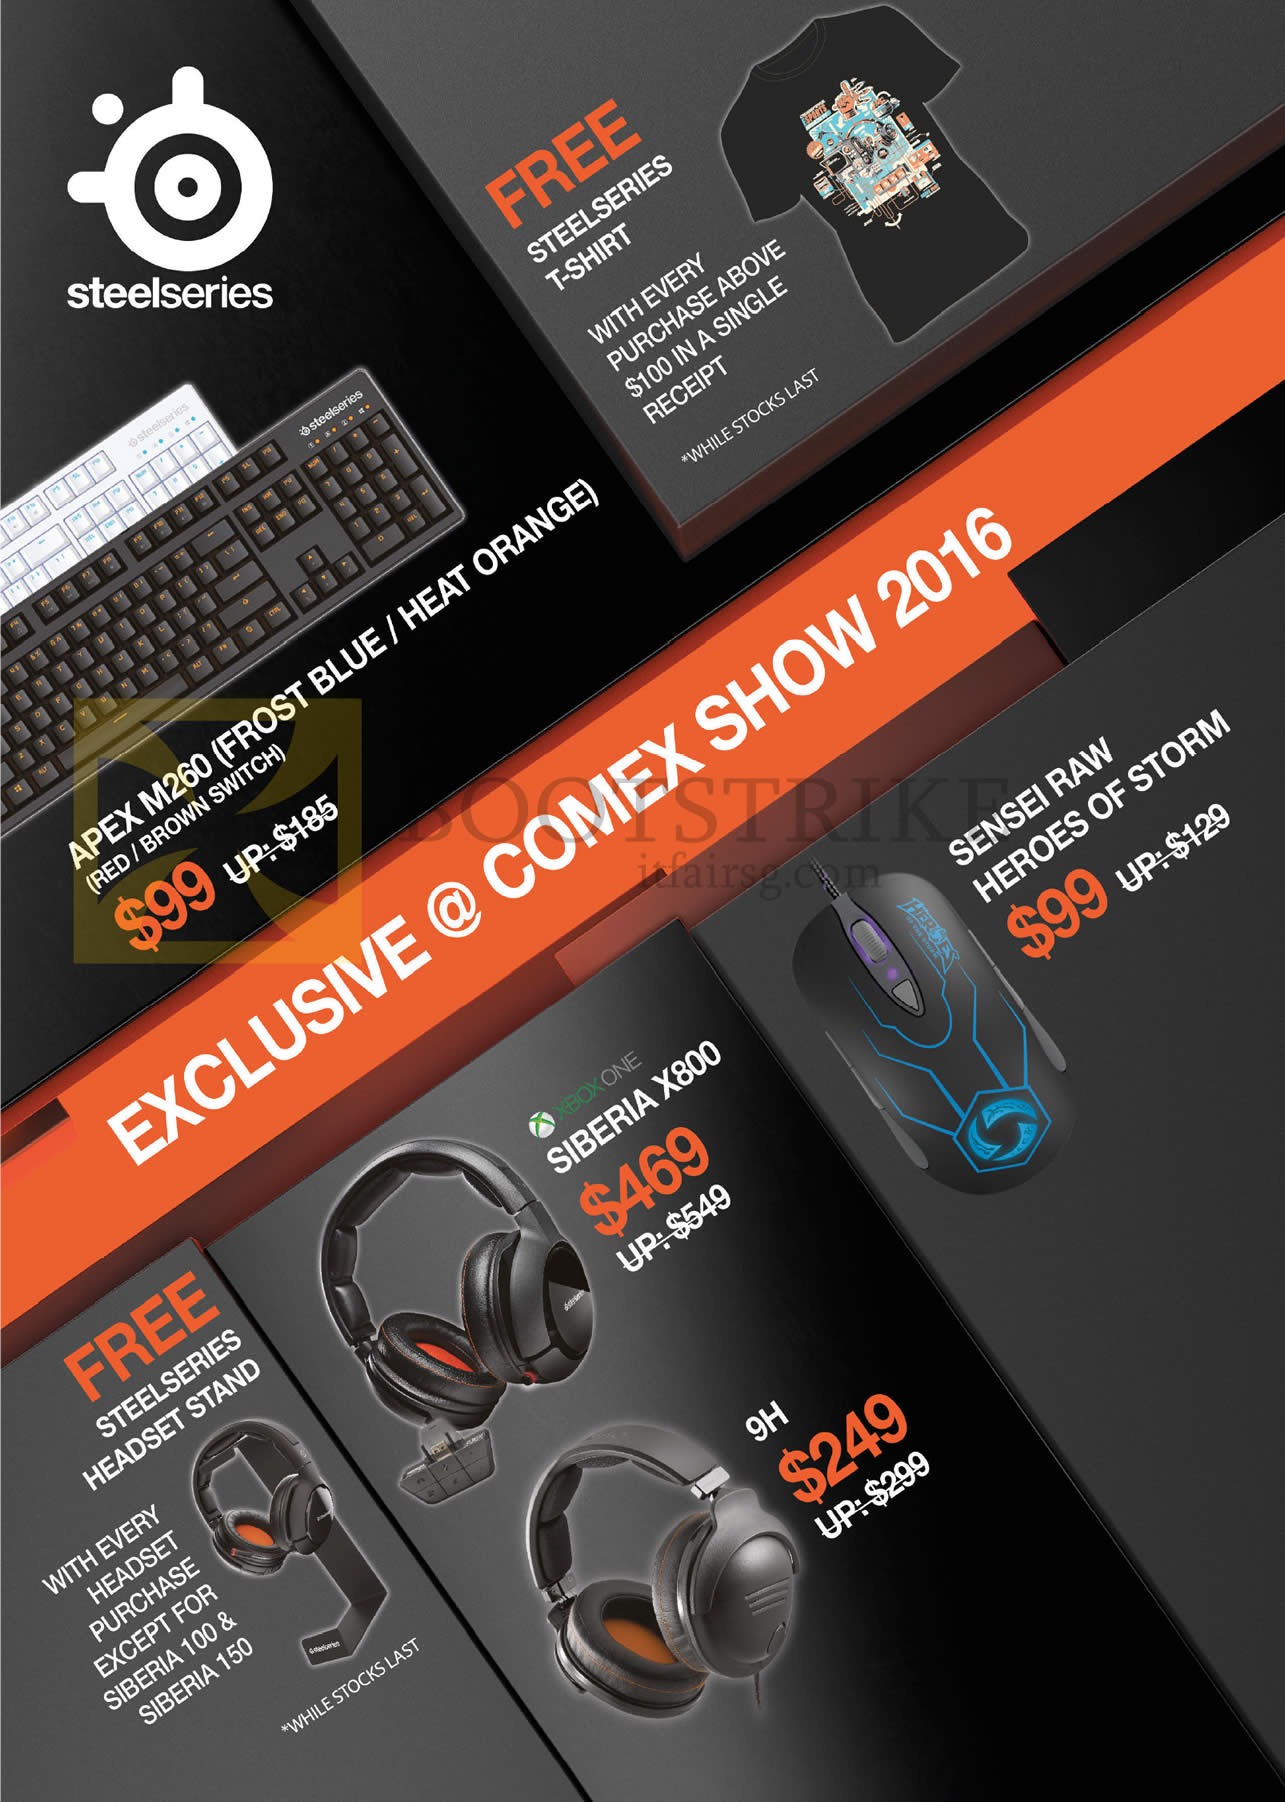 COMEX 2016 price list image brochure of Steelseries Headsets, Mouse, Siberai X800, 9H, Free Headset Stand, T-Shirt